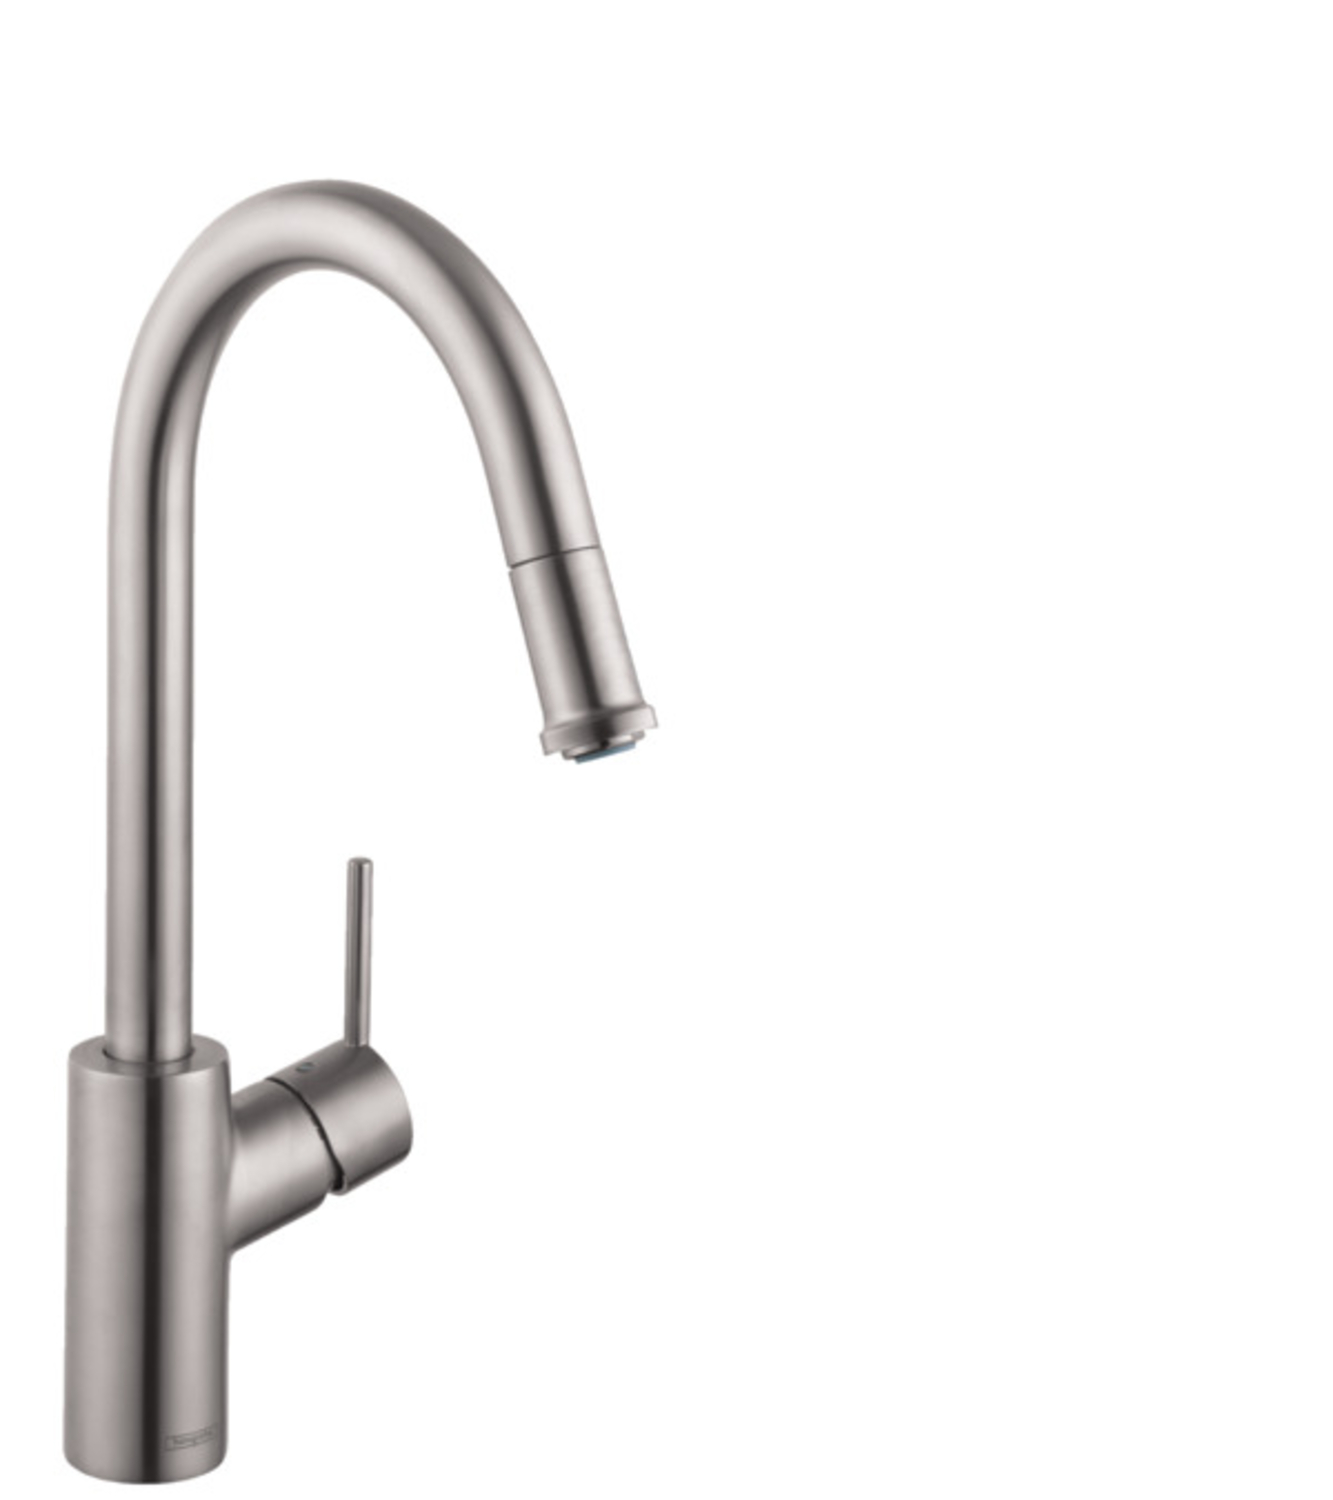 Gpm Ceramic Kitchen Pull Down Faucet